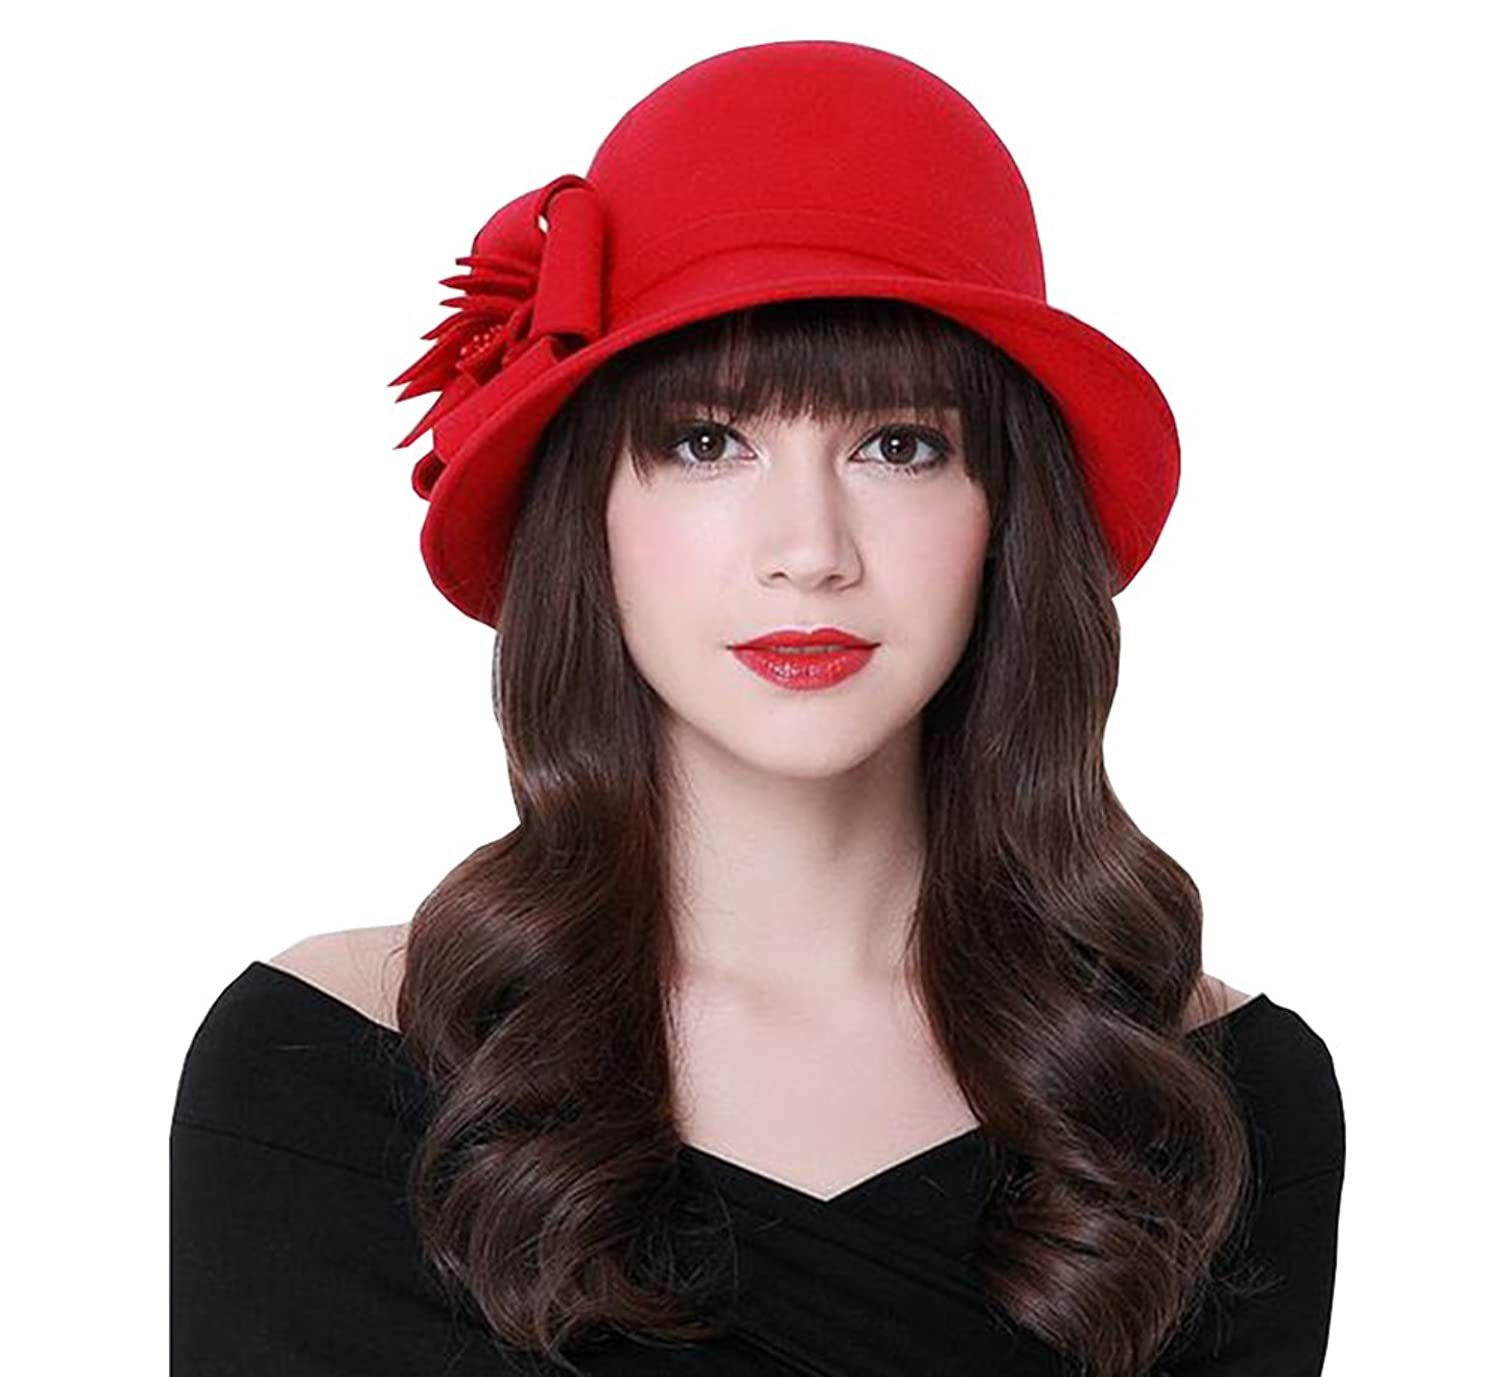 TBNA Women's Vintage Red Wool Cloche Bucket Winter Hat with Flower